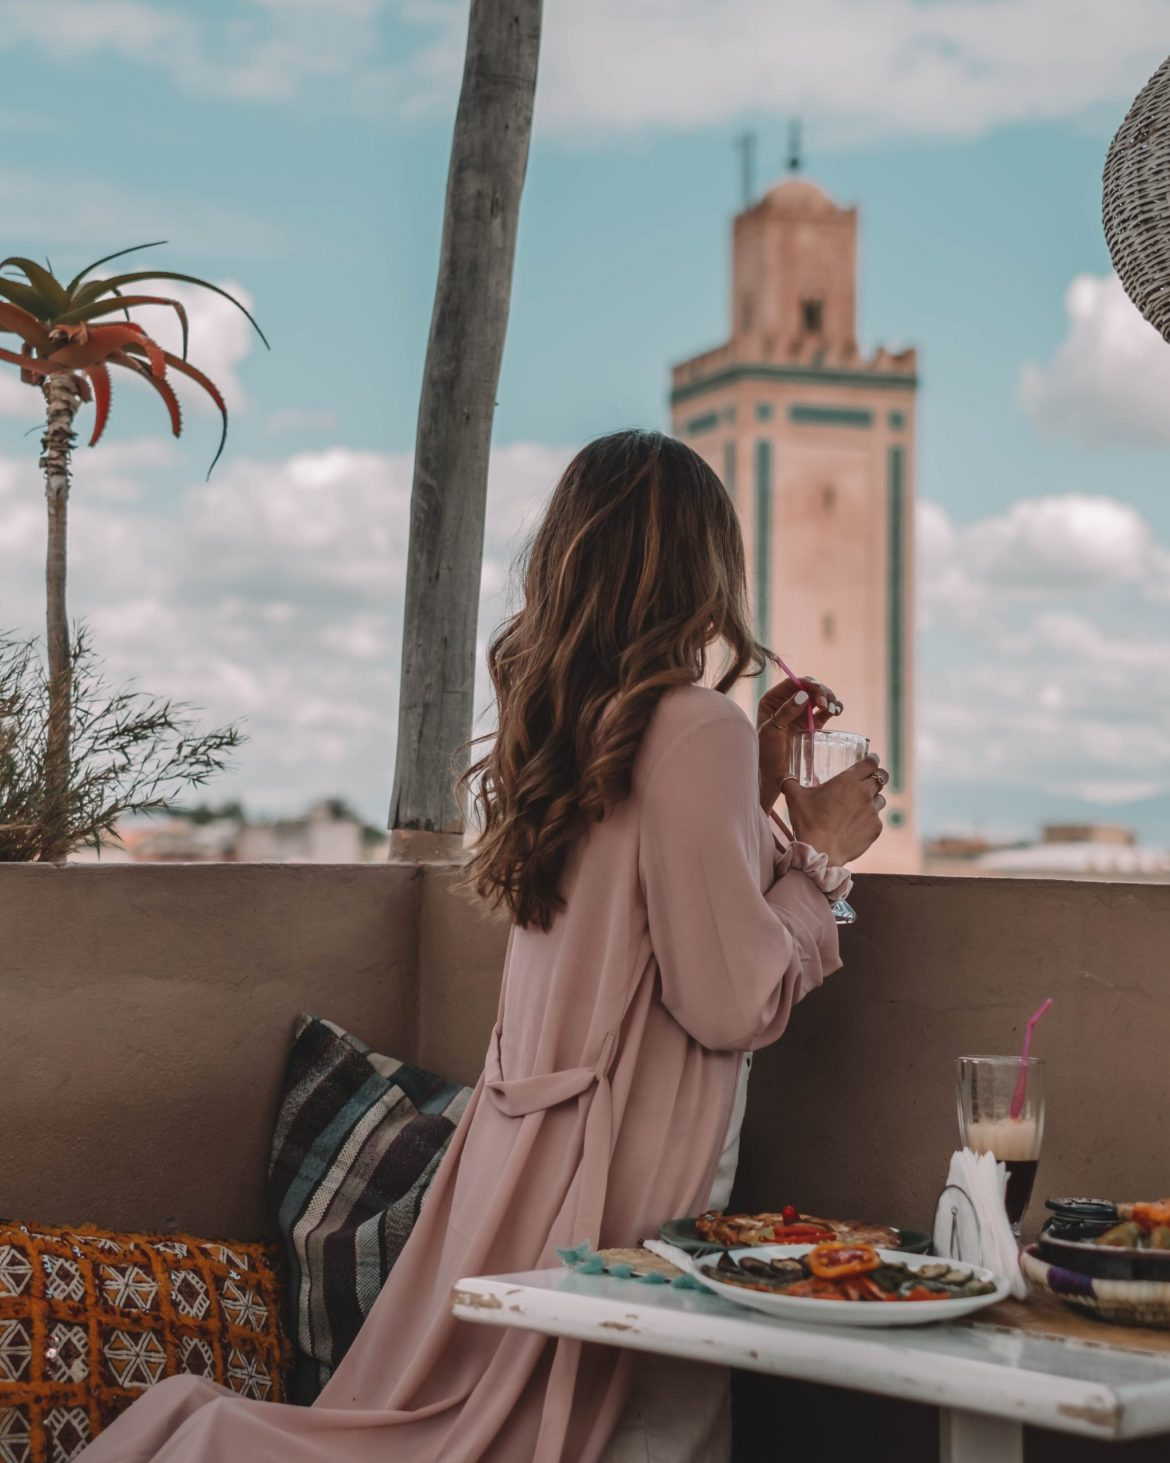 Atay Cafe Marrakech - a quick travel guide to Marrakech